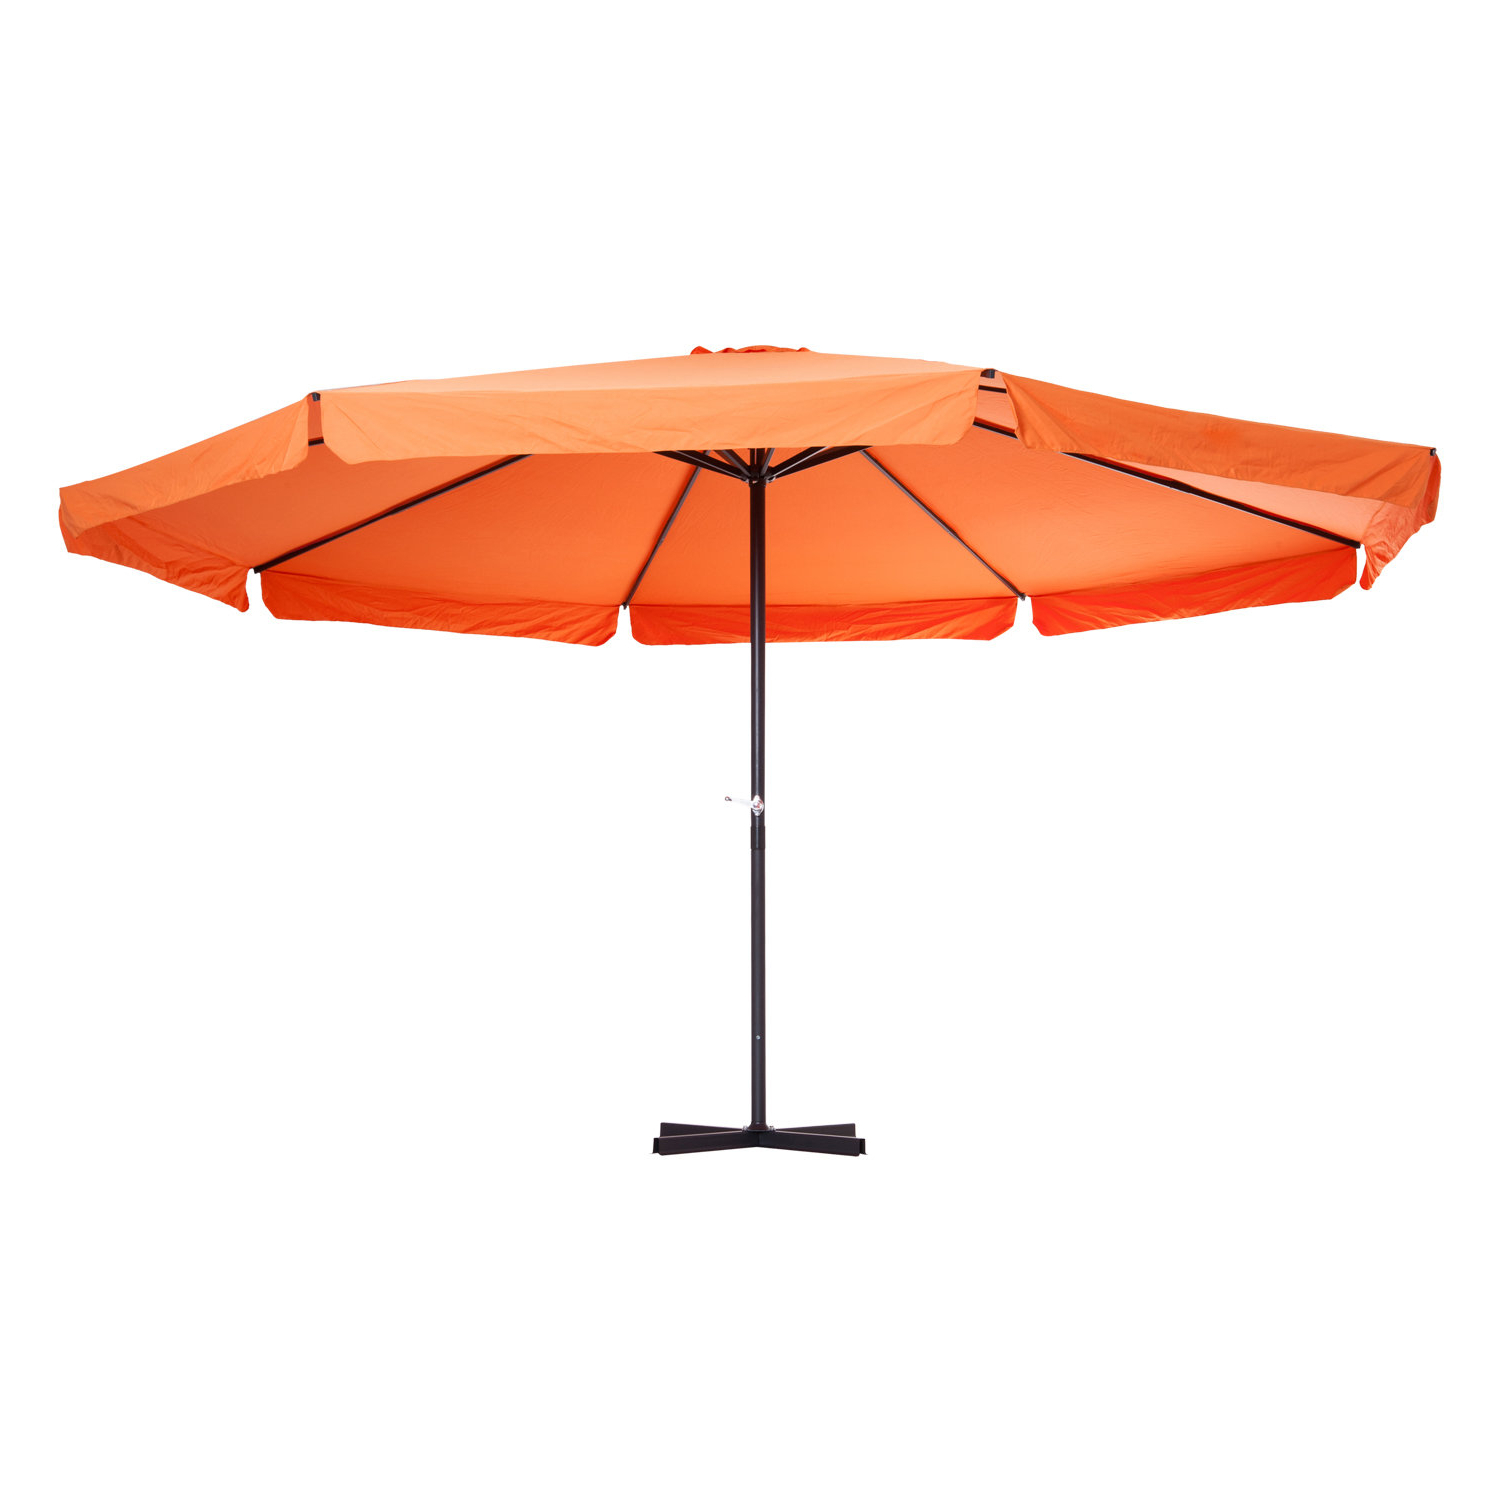 Lagasse Market Umbrellas Pertaining To Most Up To Date Karolinka 16' Umbrella (Gallery 17 of 20)